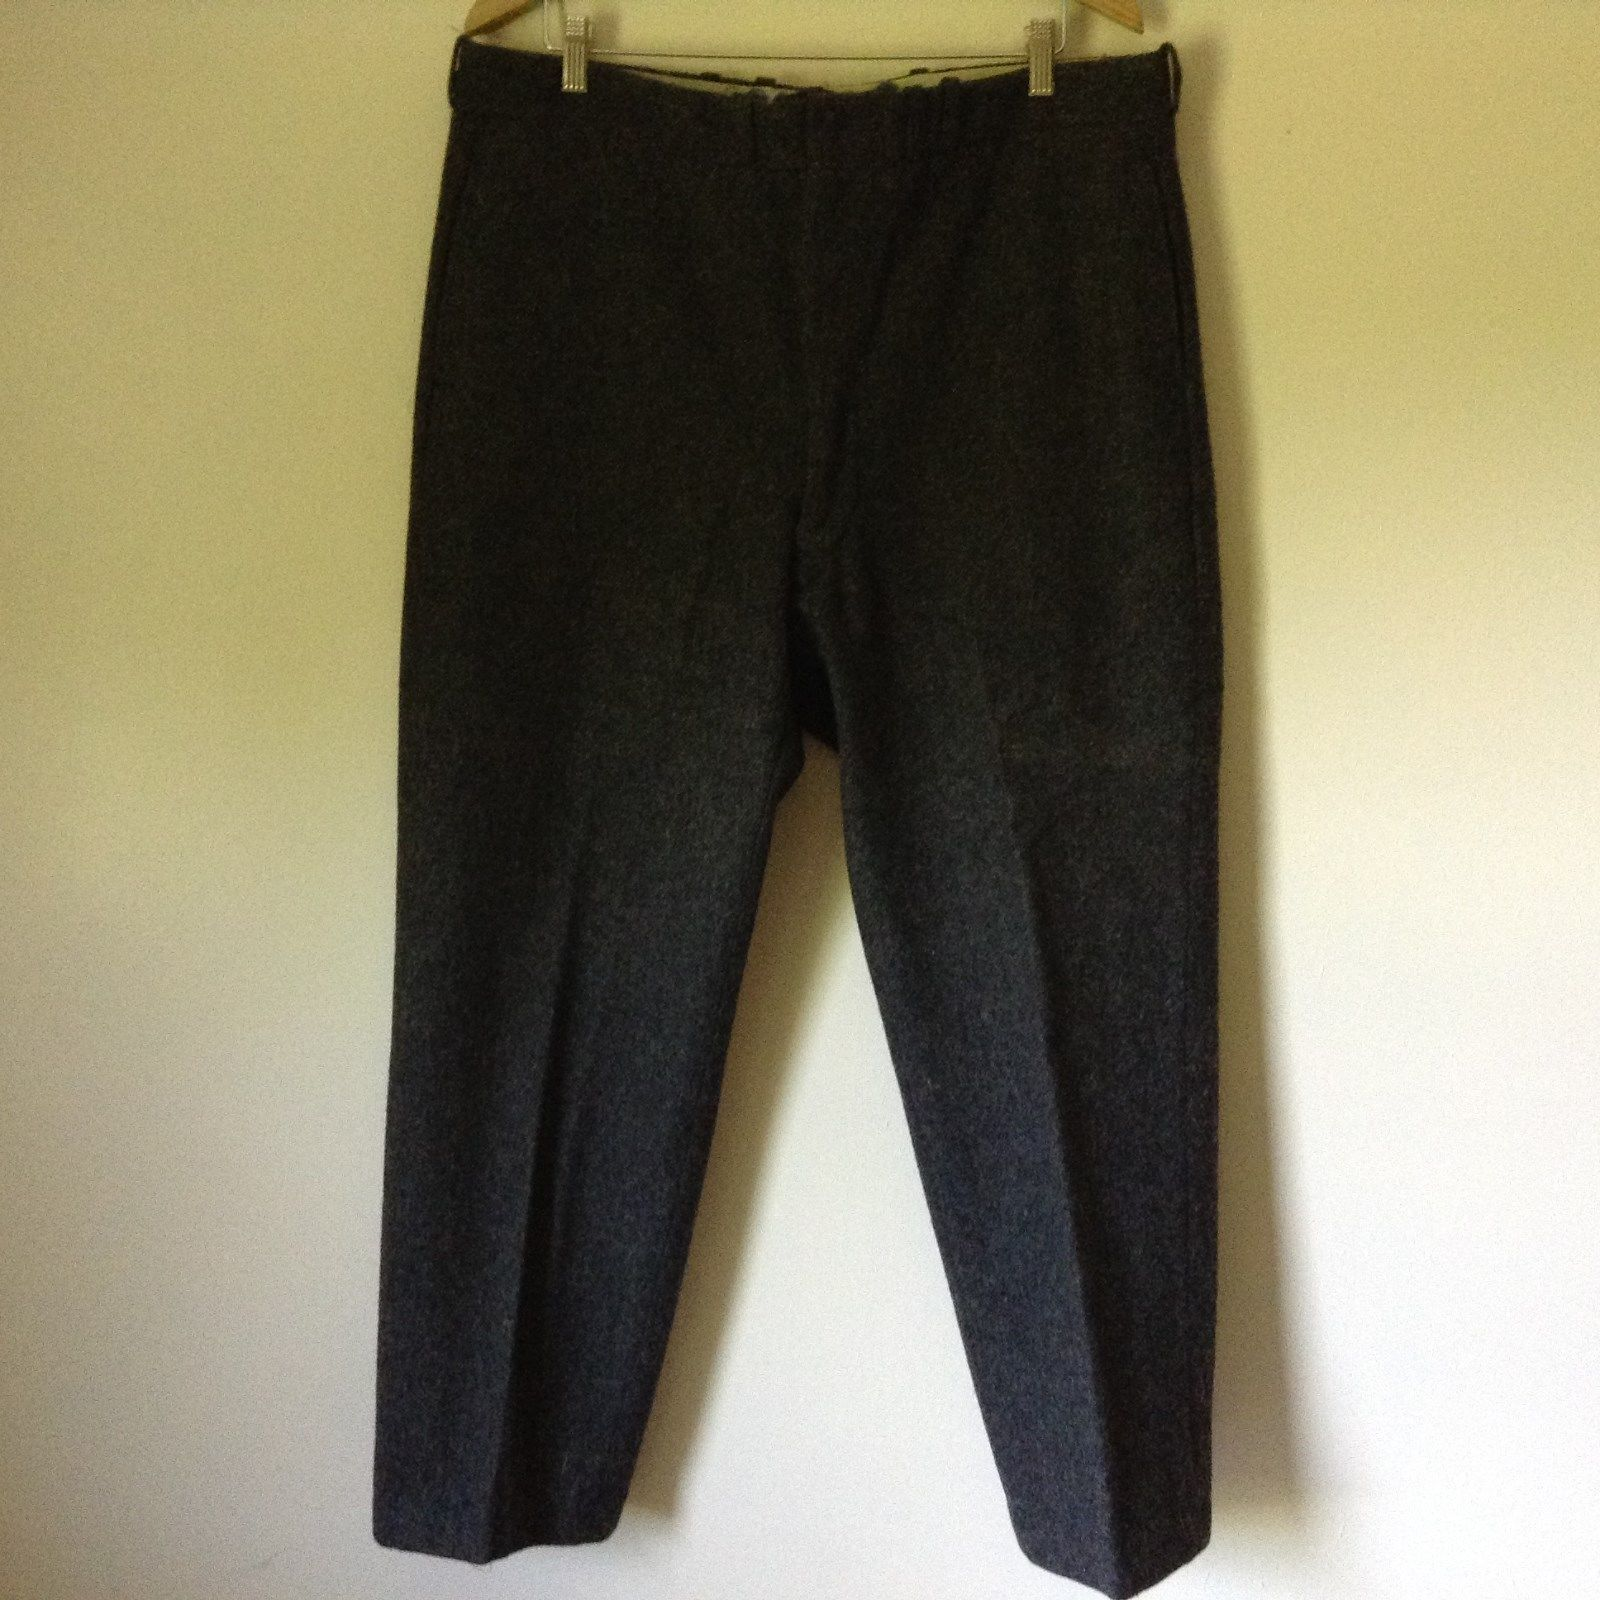 Very Nice L L Bean Pure Wool Gray Dress Pants Measurements Below